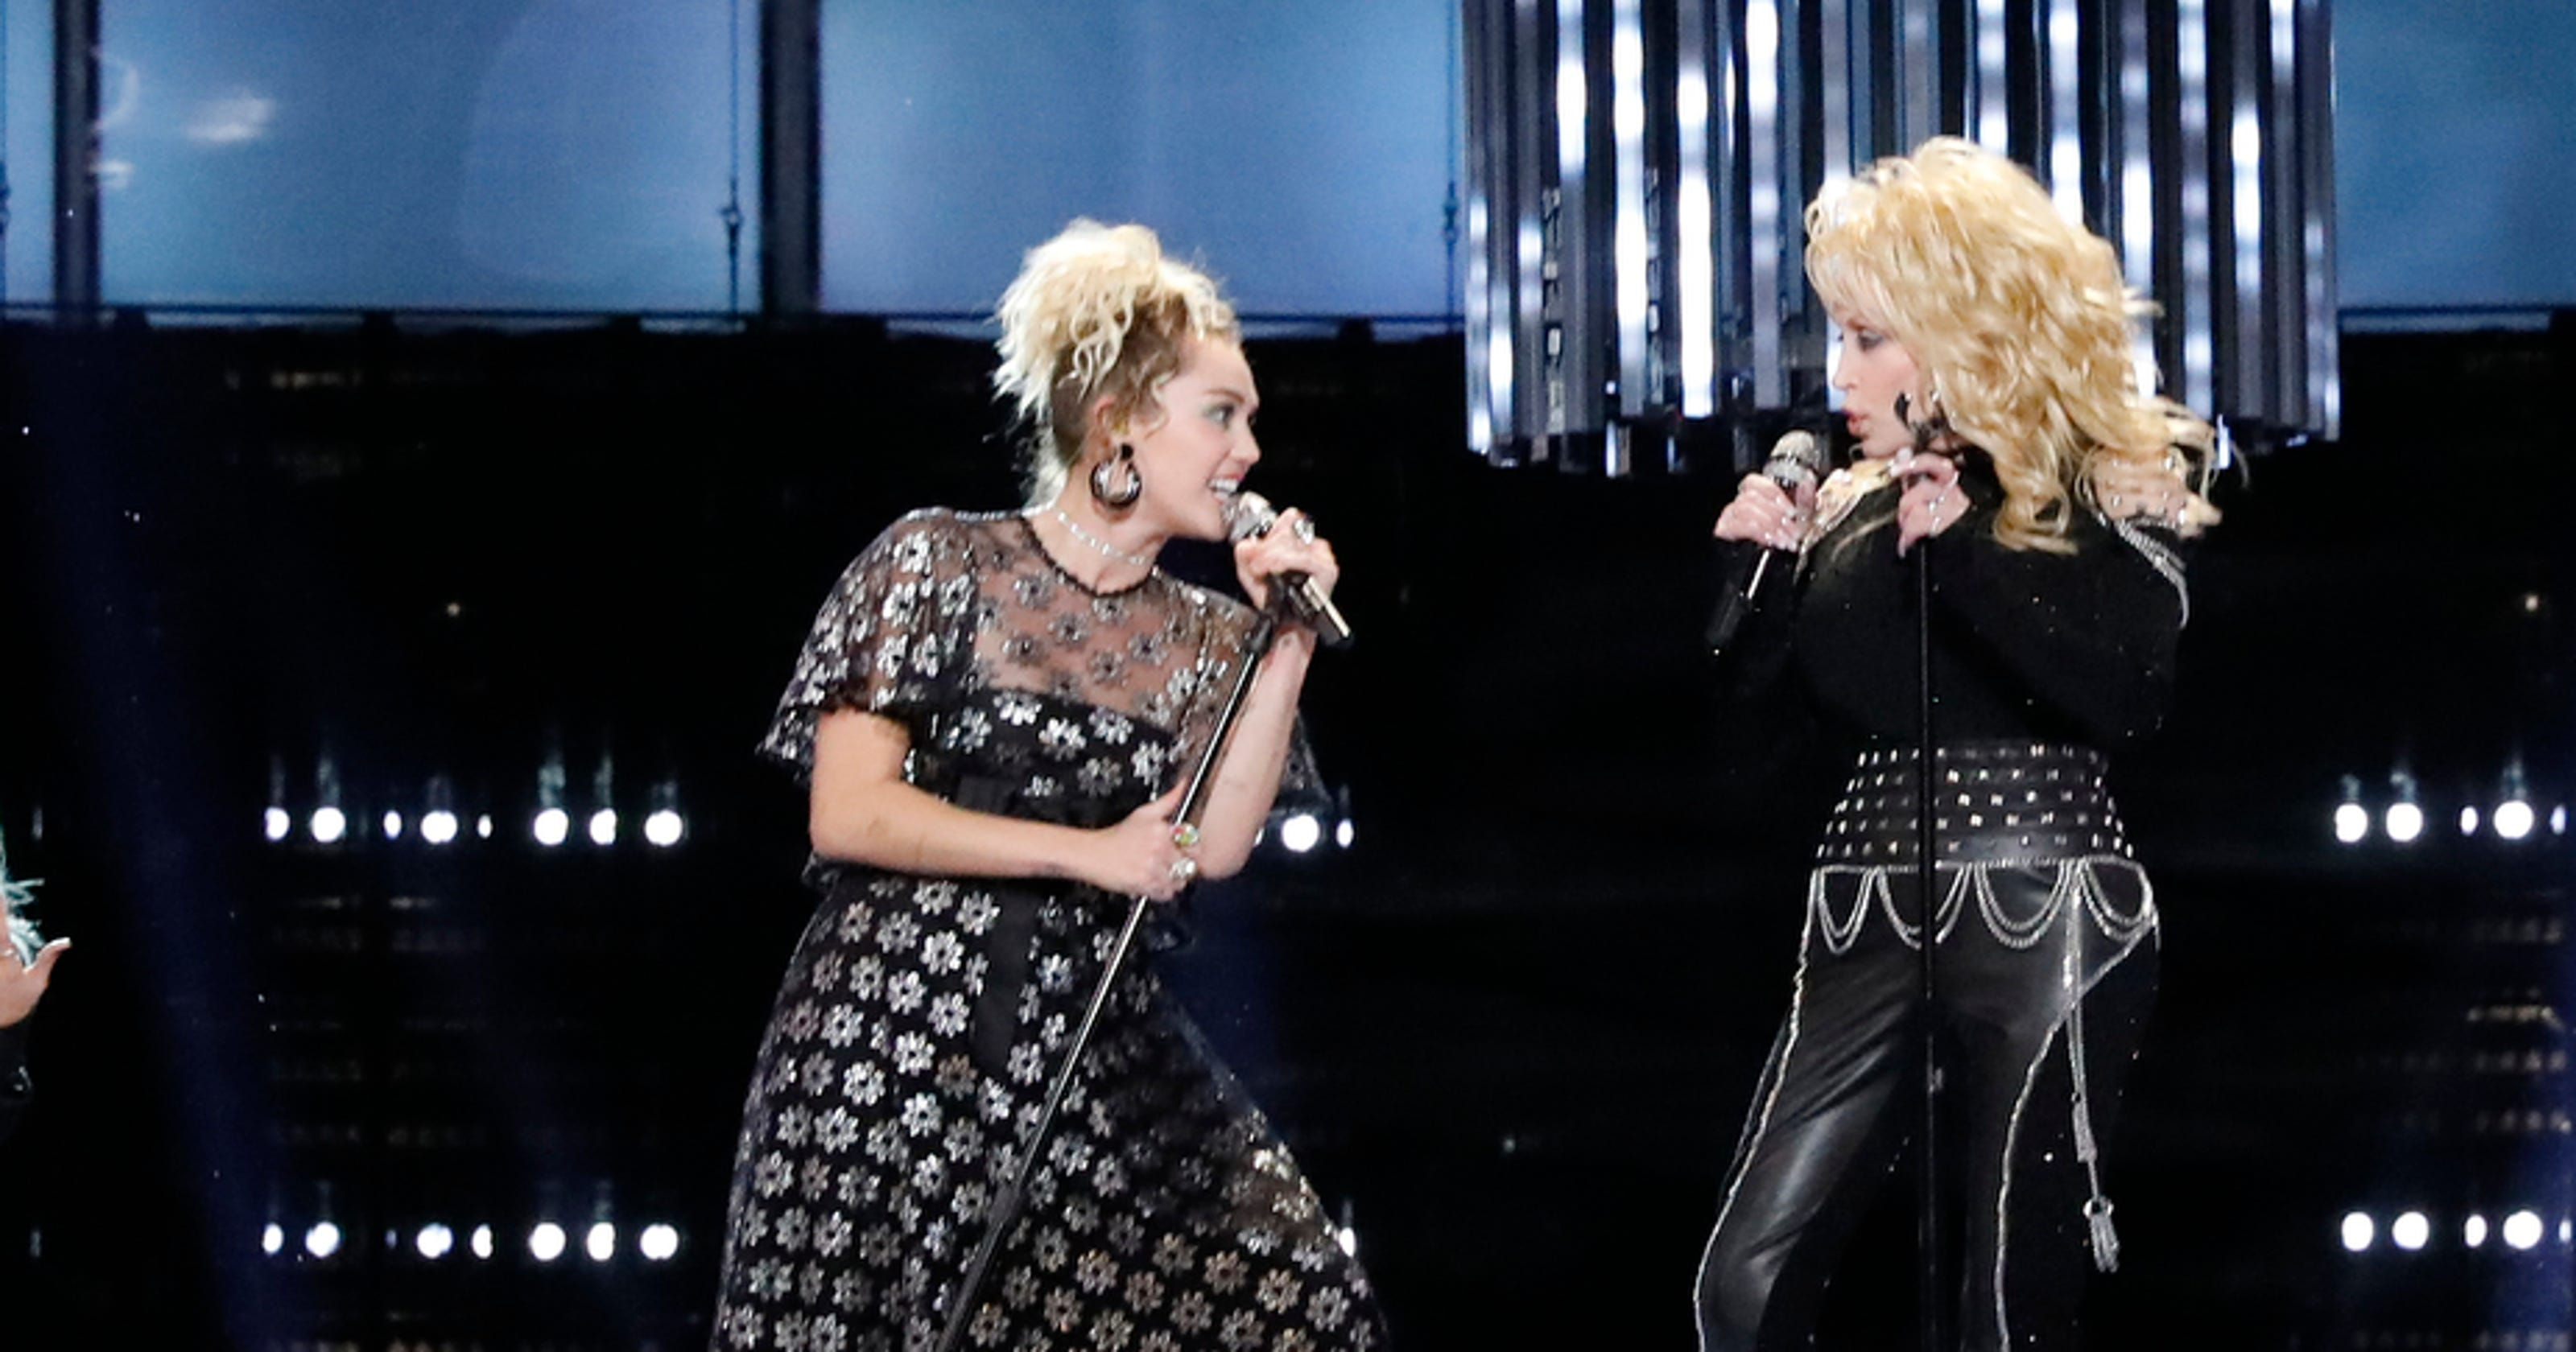 fbee836415a  The Voice   Miley Cyrus covers  Jolene  with Dolly Parton before Top 8  reveal